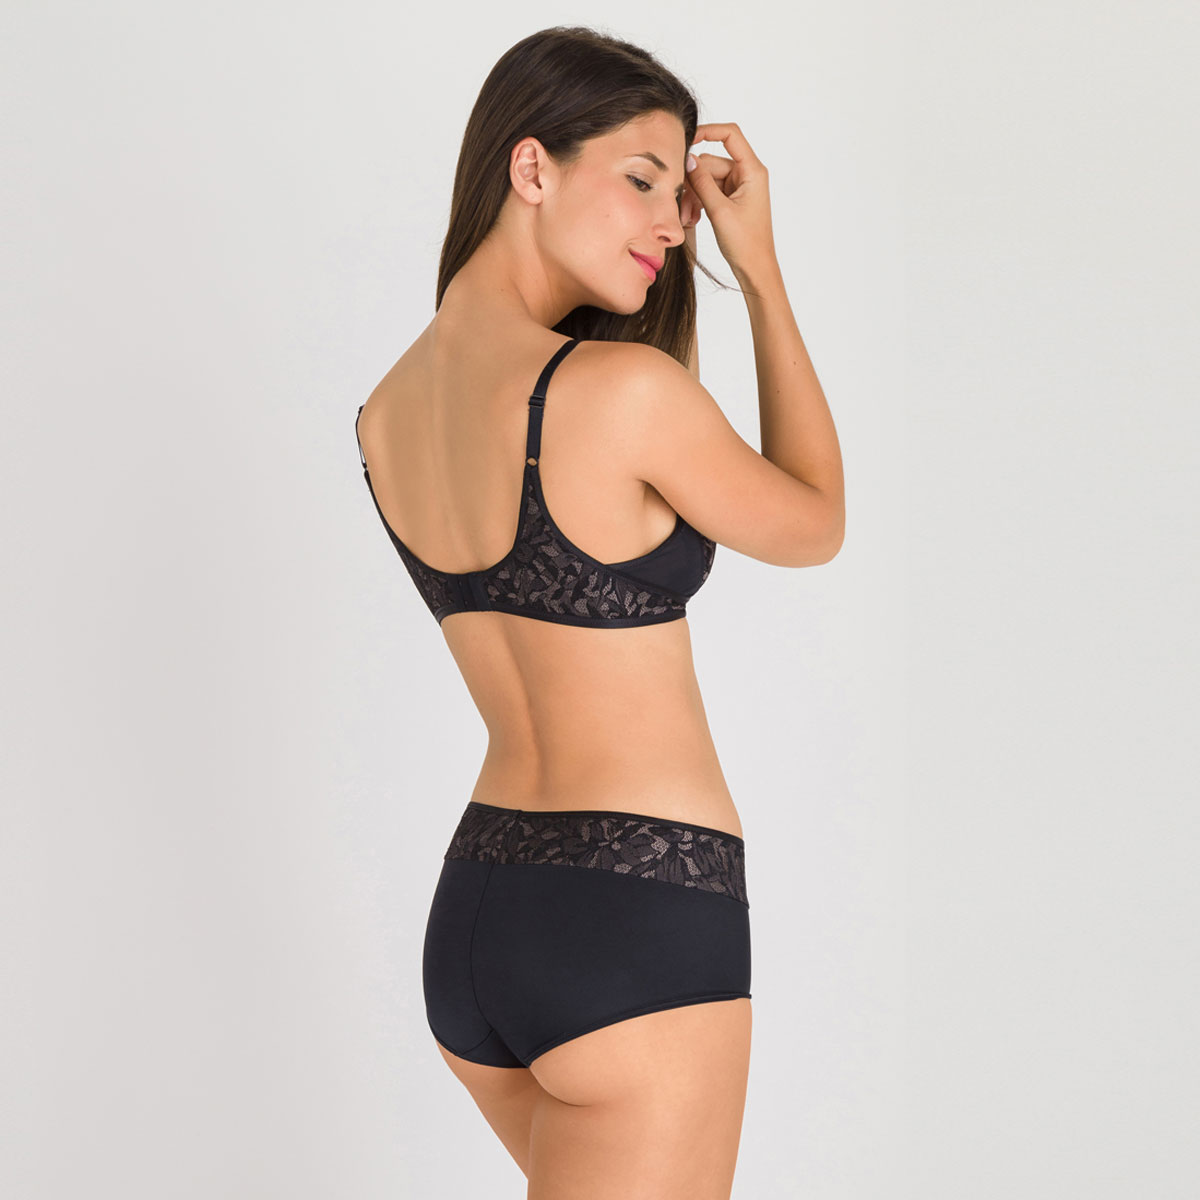 Reggiseno senza ferretto nero e grigio - Ideal Beauty Lace, , PLAYTEX